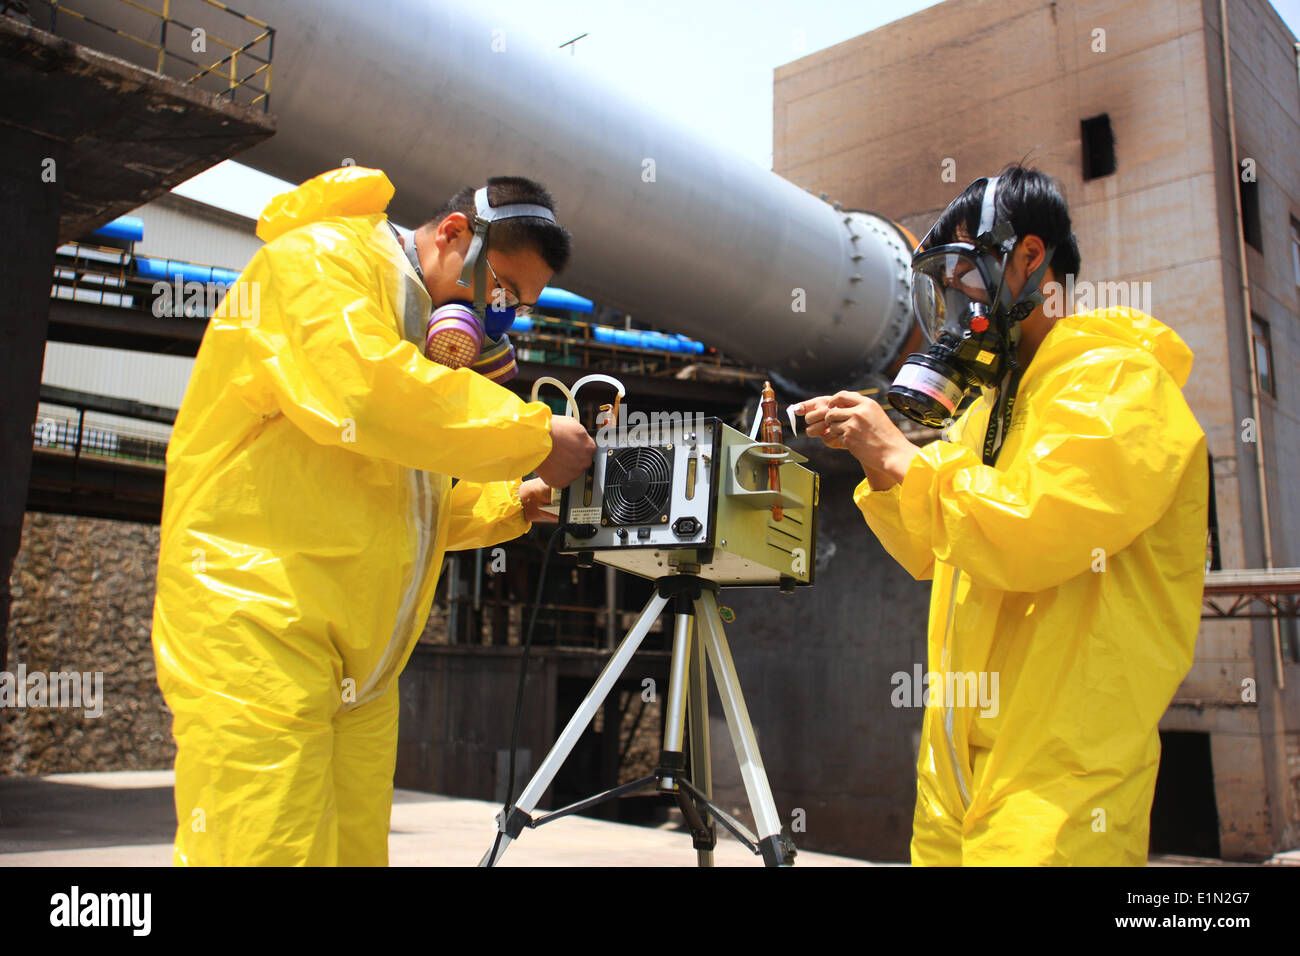 Haidong, China's Qinghai Province. 7th June, 2014. Staff members of environmental monitoring department moniter the level of poisonous gas near the site of gas leak at Yuanshishan ferronickel mine in Ping'an County of Haidong City, northwest China's Qinghai Province, June 7, 2014. A Cyanogen sulfide leak killed two and sickened another six at the ferronickel mine early Saturday, the local safety authority said. Credit:  Guo Qiuda/Xinhua/Alamy Live News - Stock Image